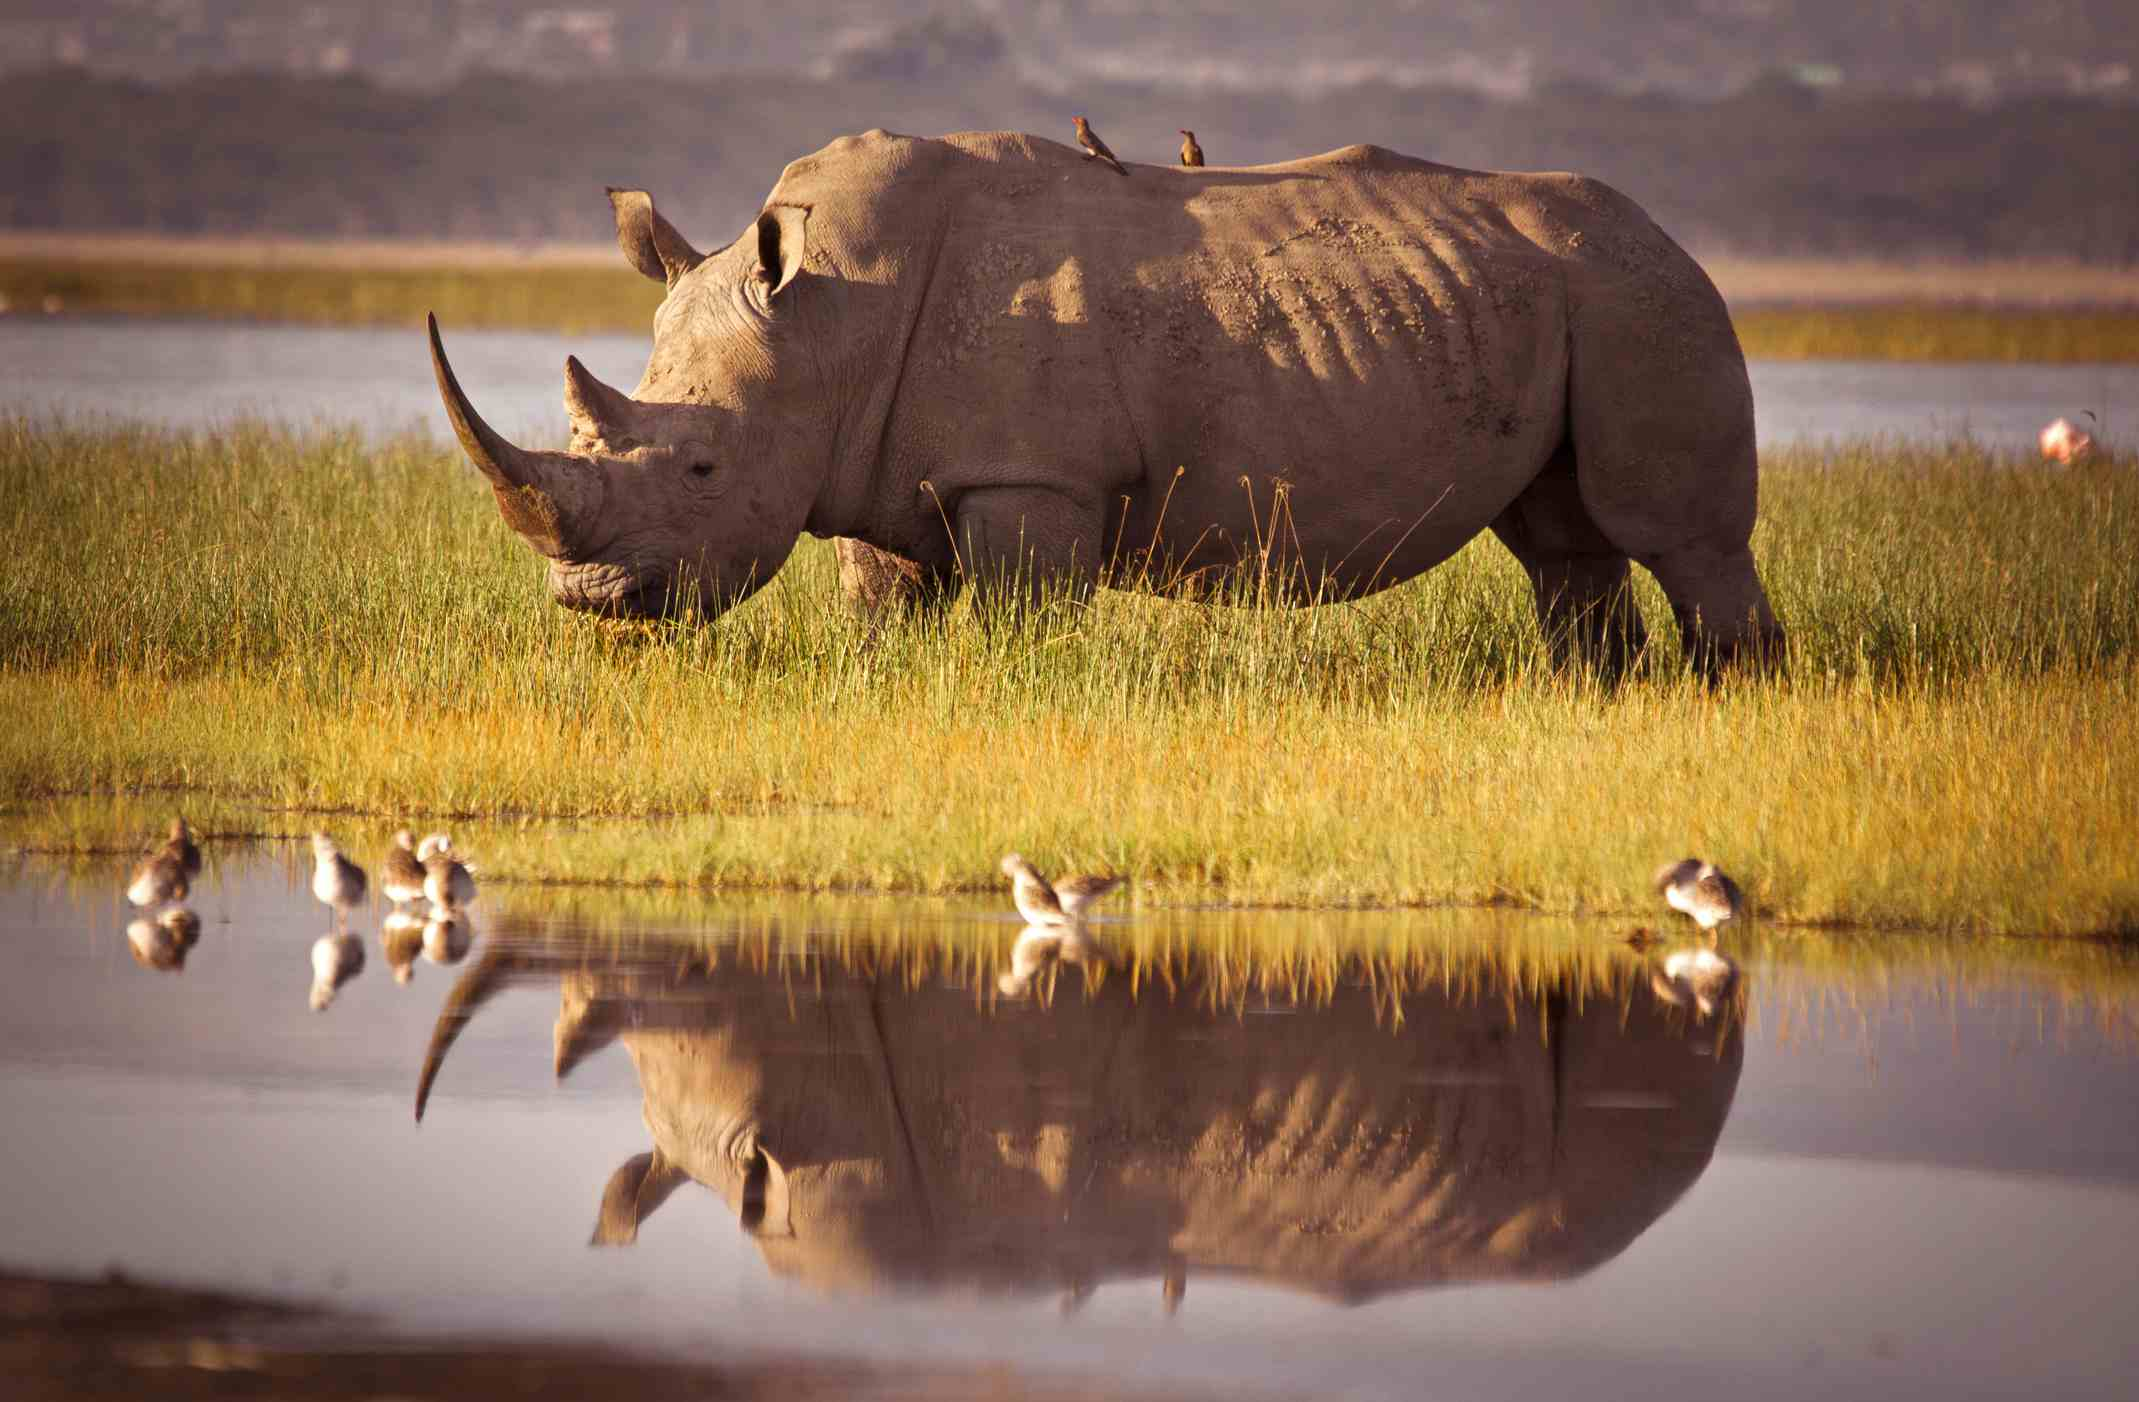 Rhino standing in front of a water hole